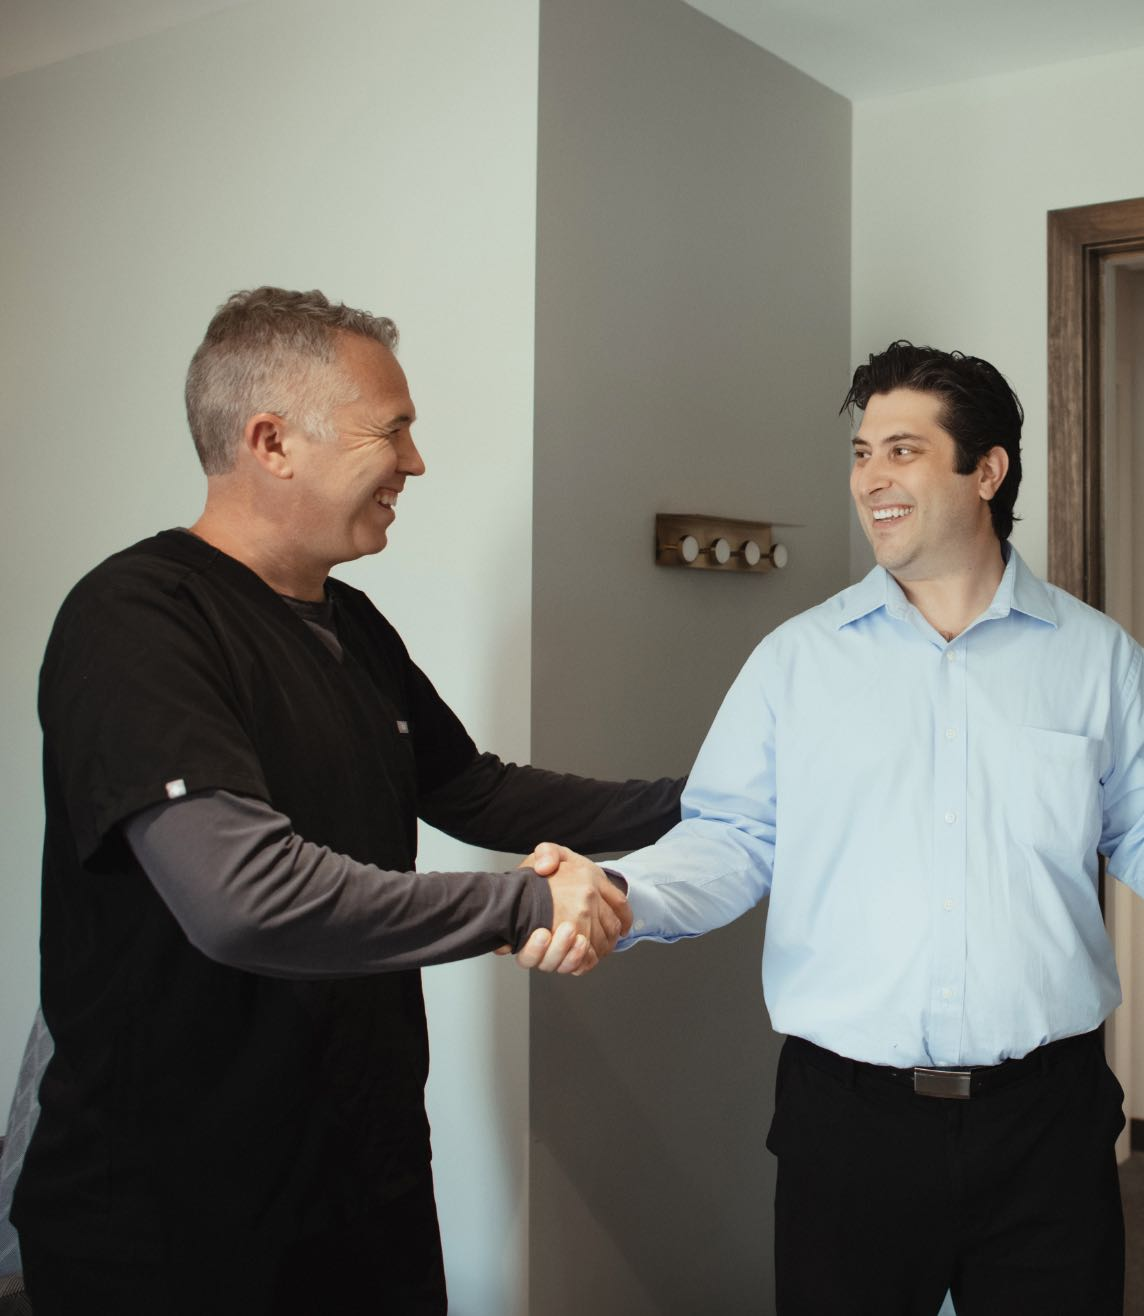 Photo of Dr. Brent Van Hala shaking hands with a patient